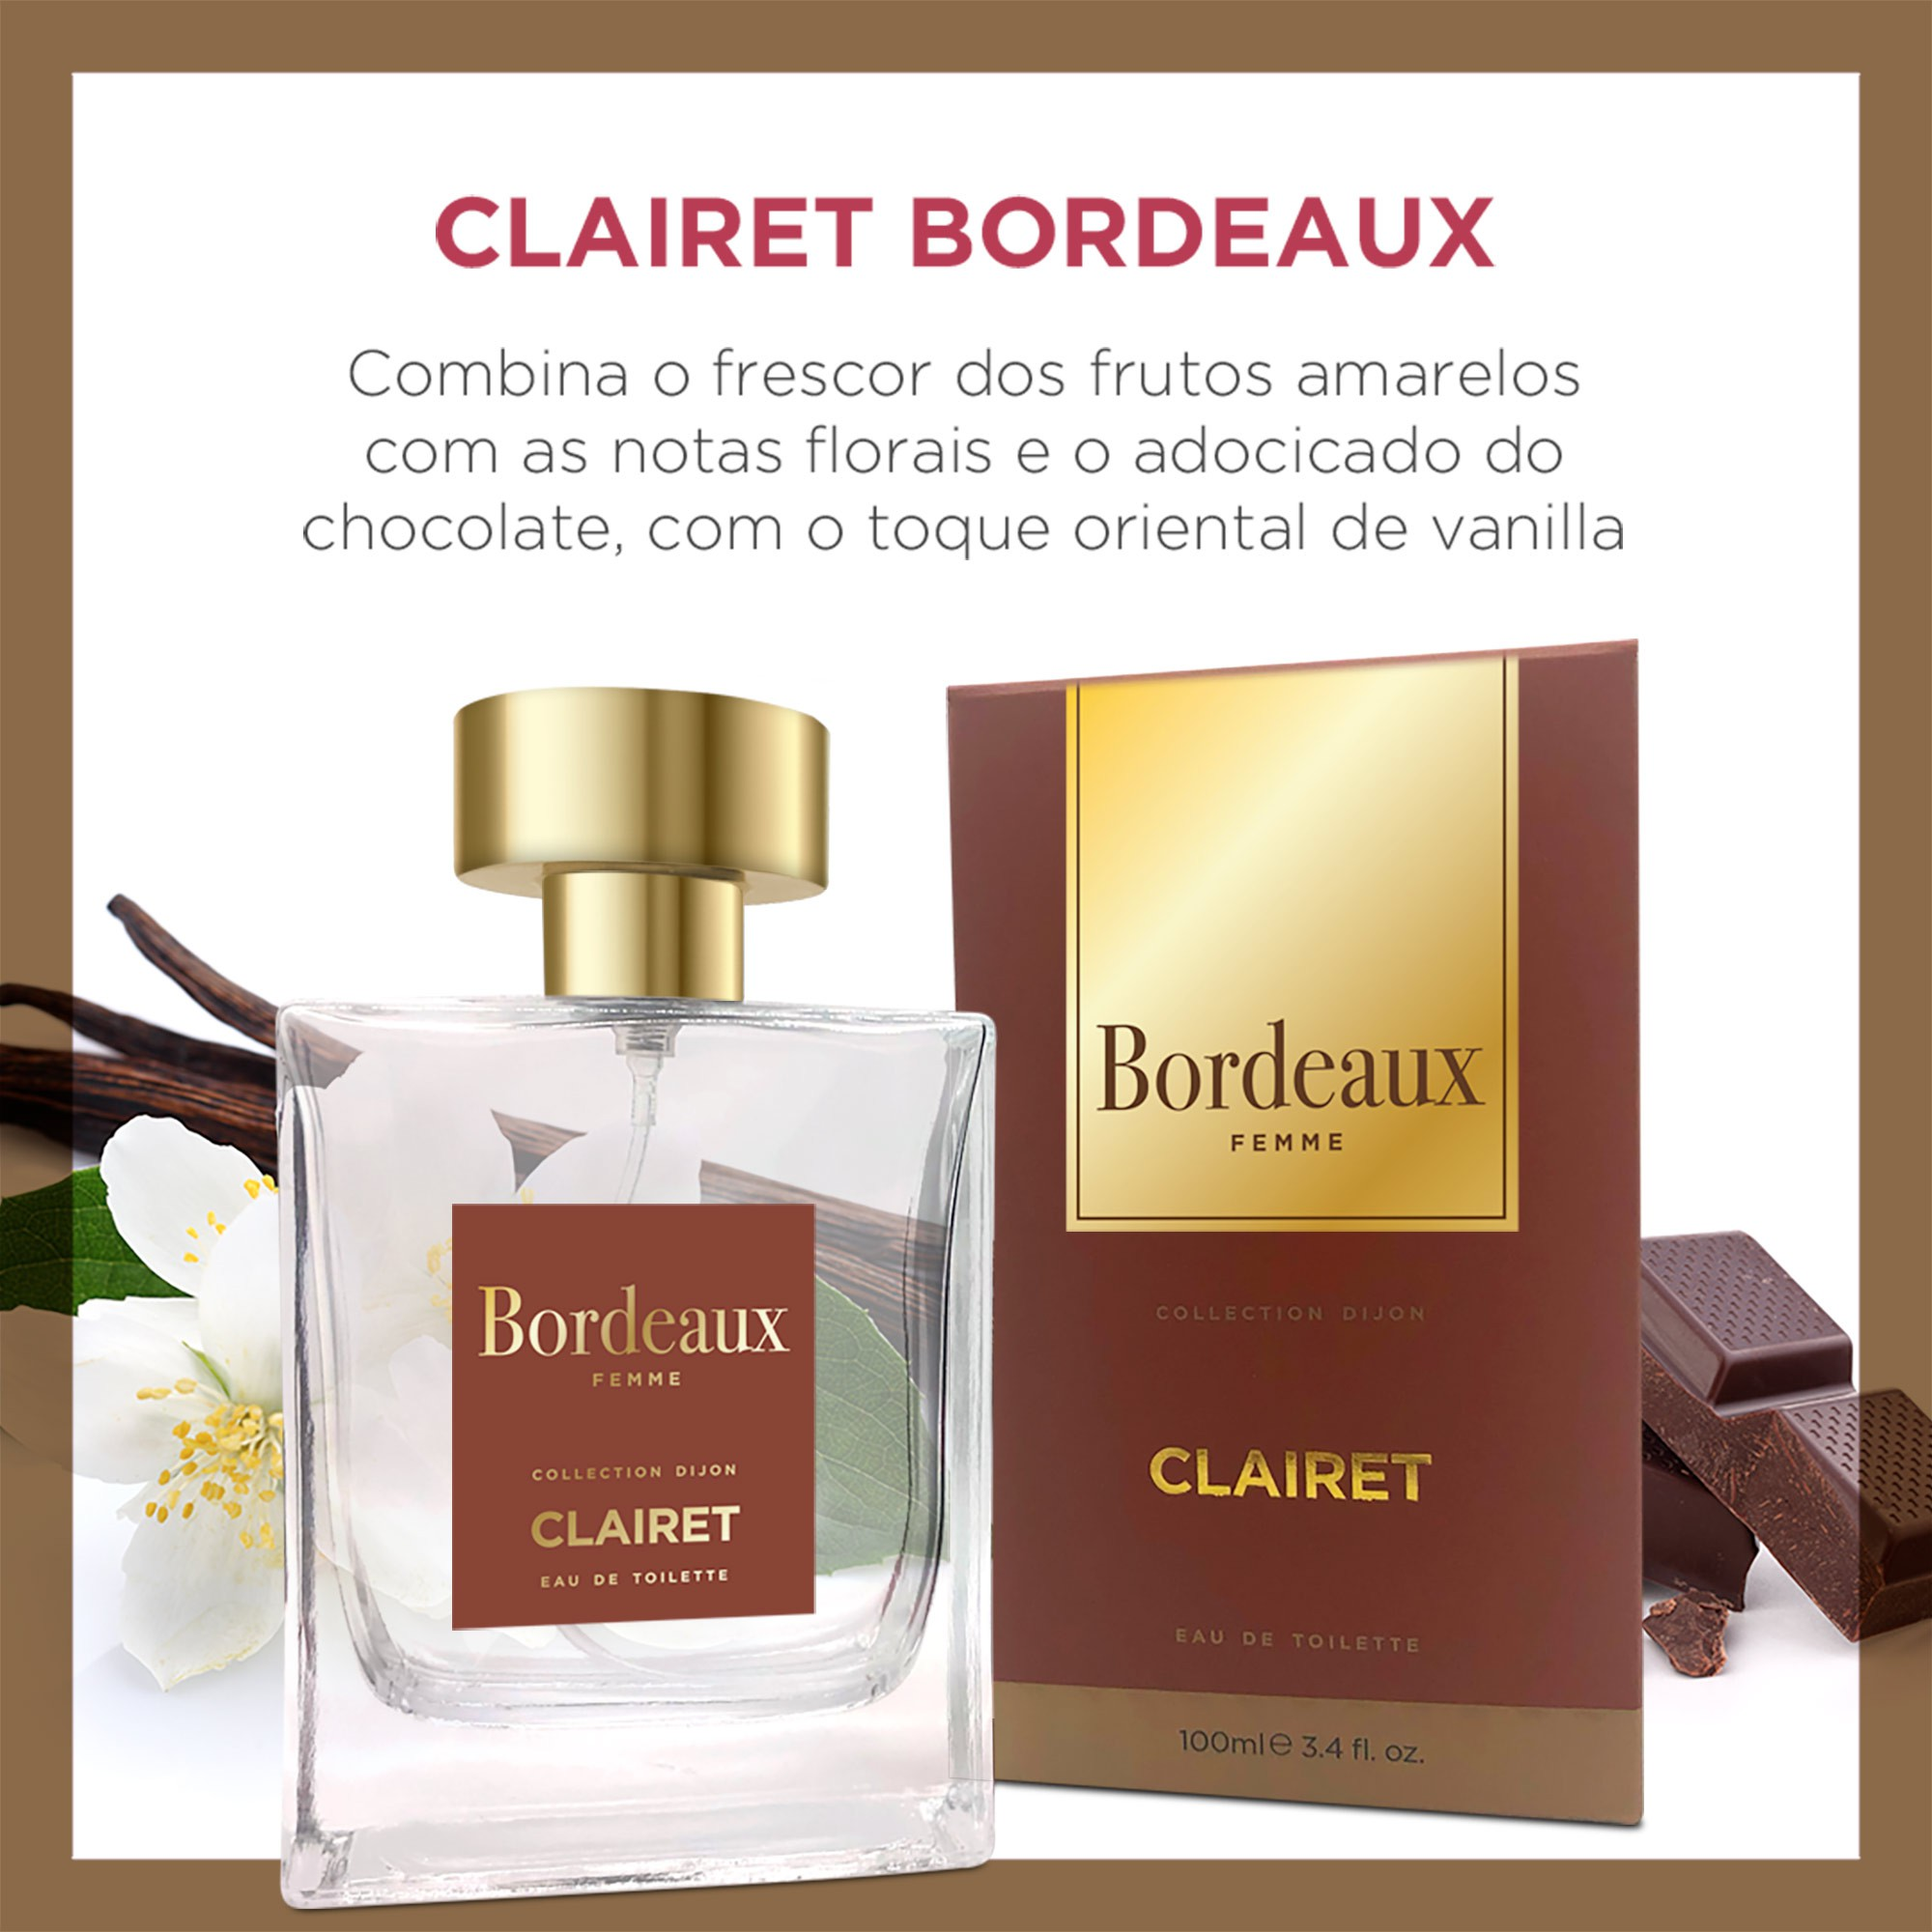 Clairet Bordeaux - Collection Dijon